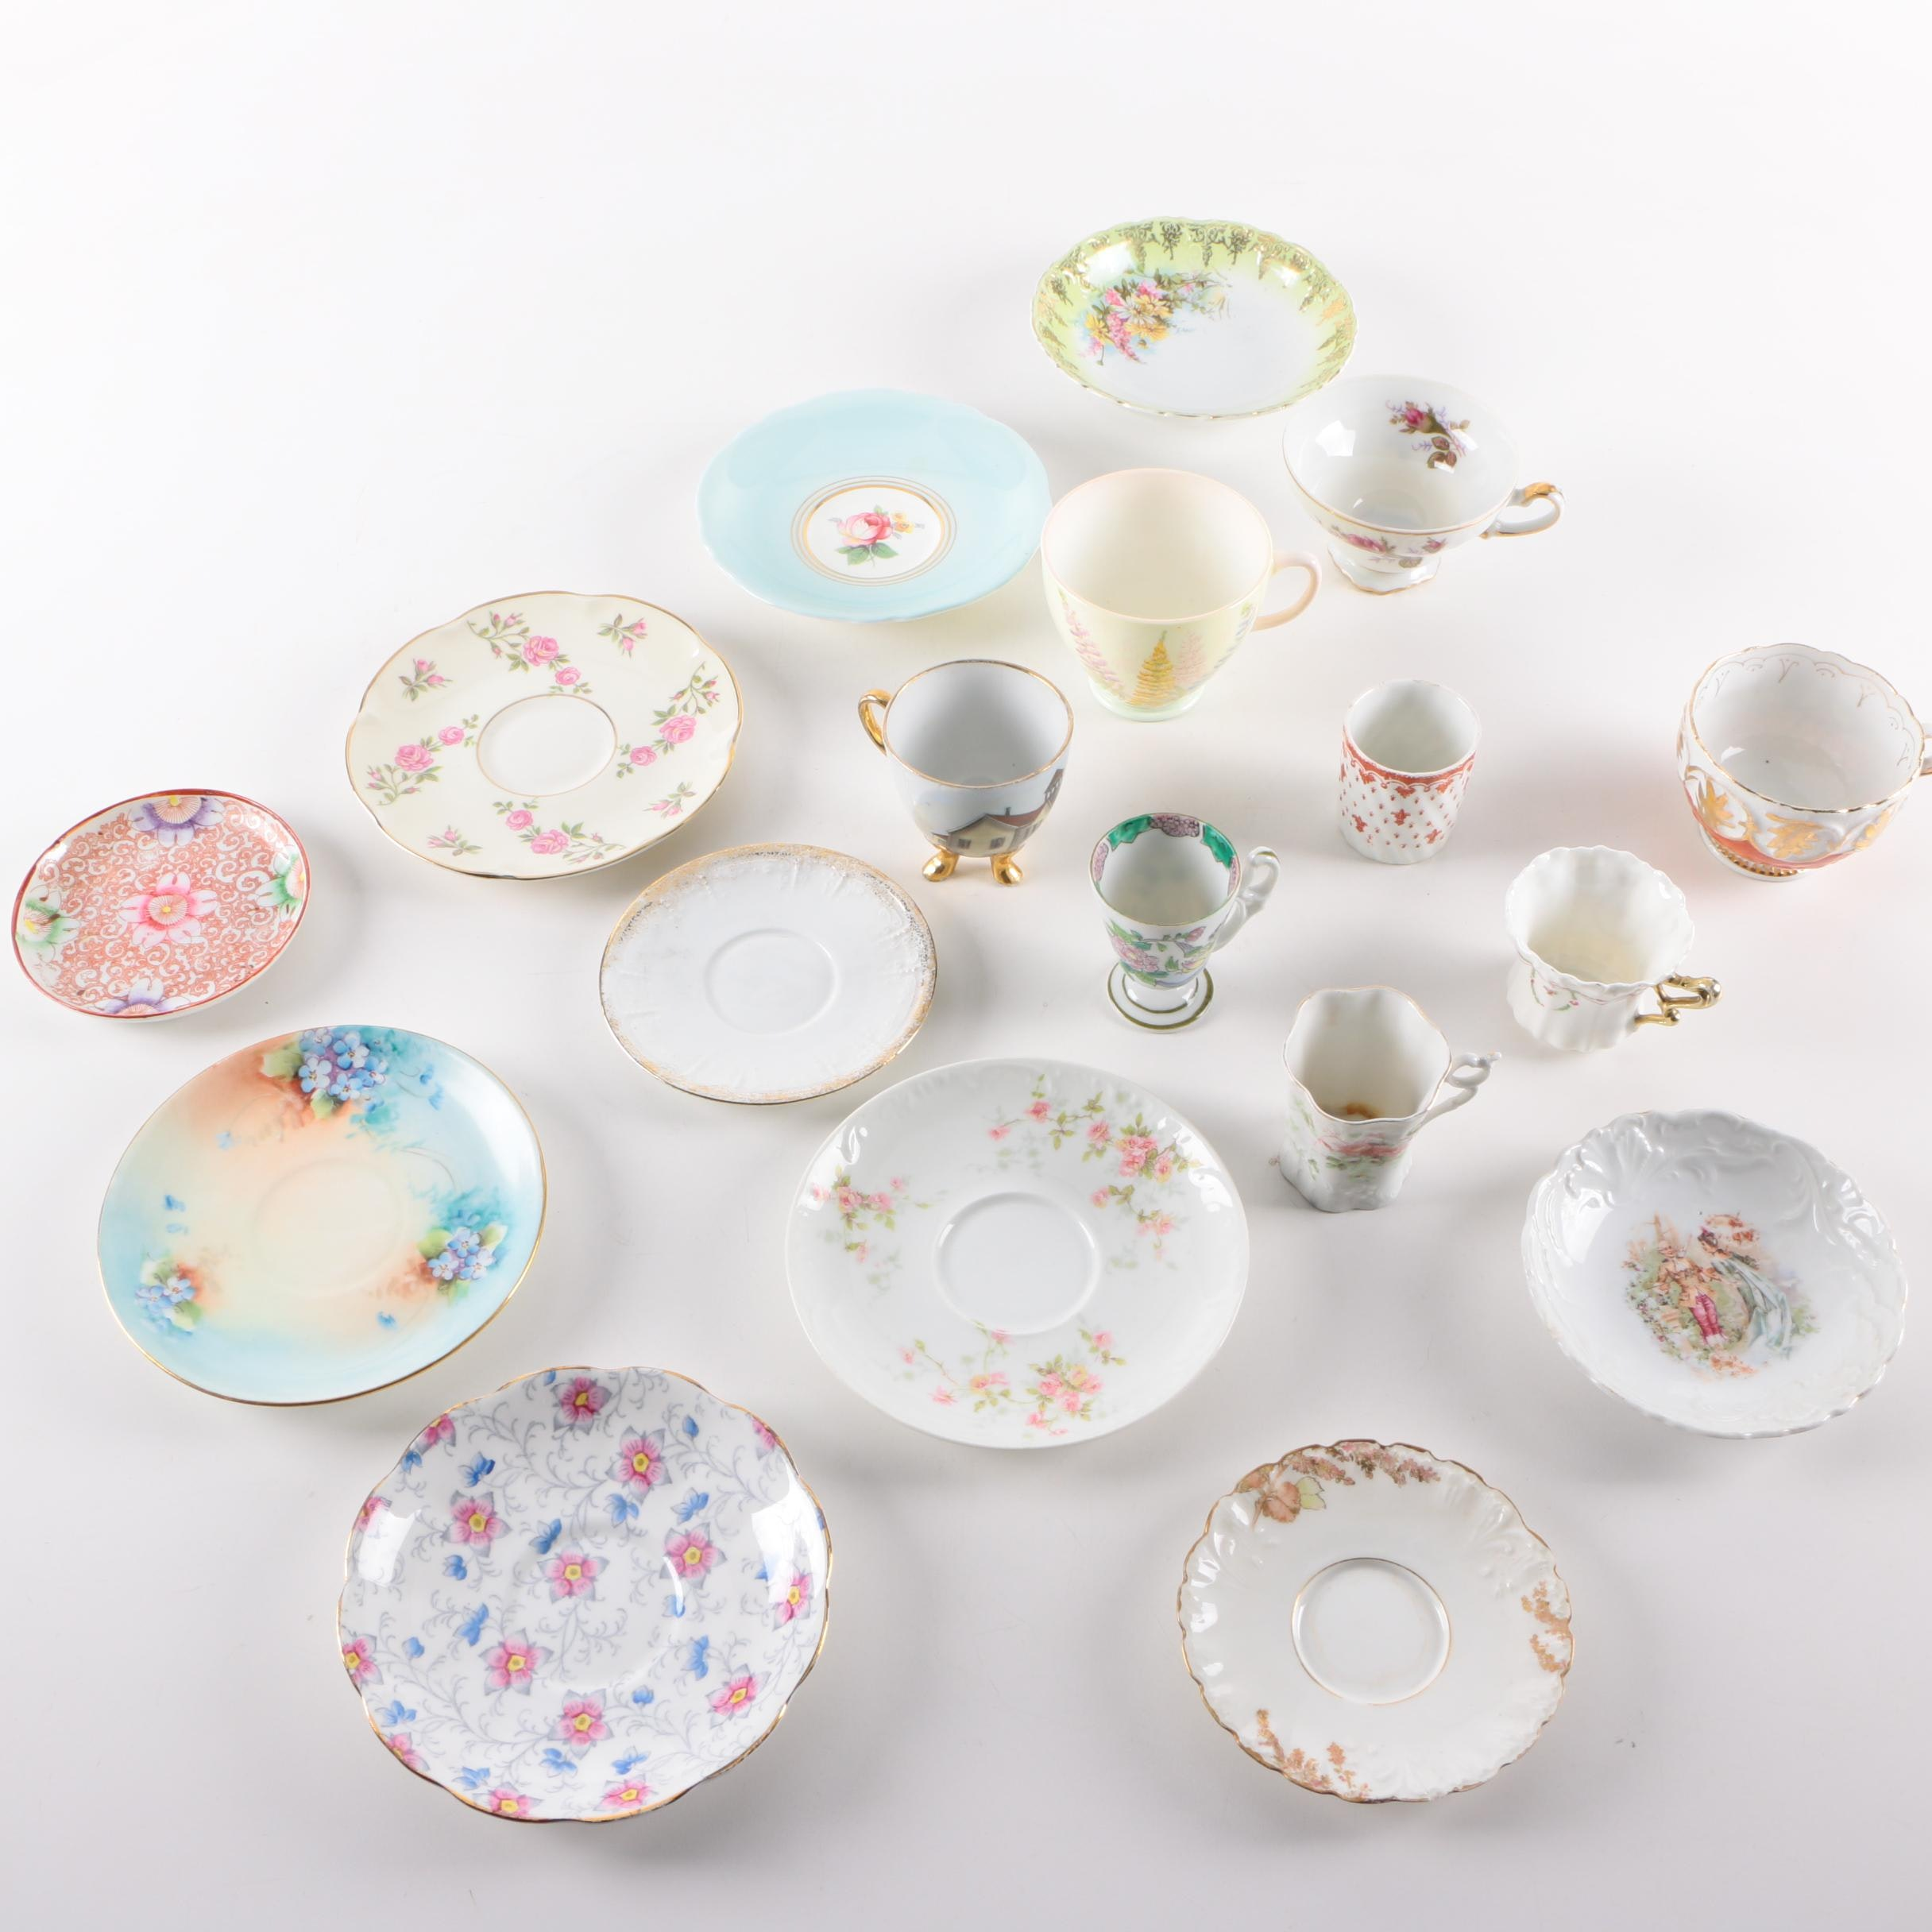 Cups and Saucers Featuring Haviland